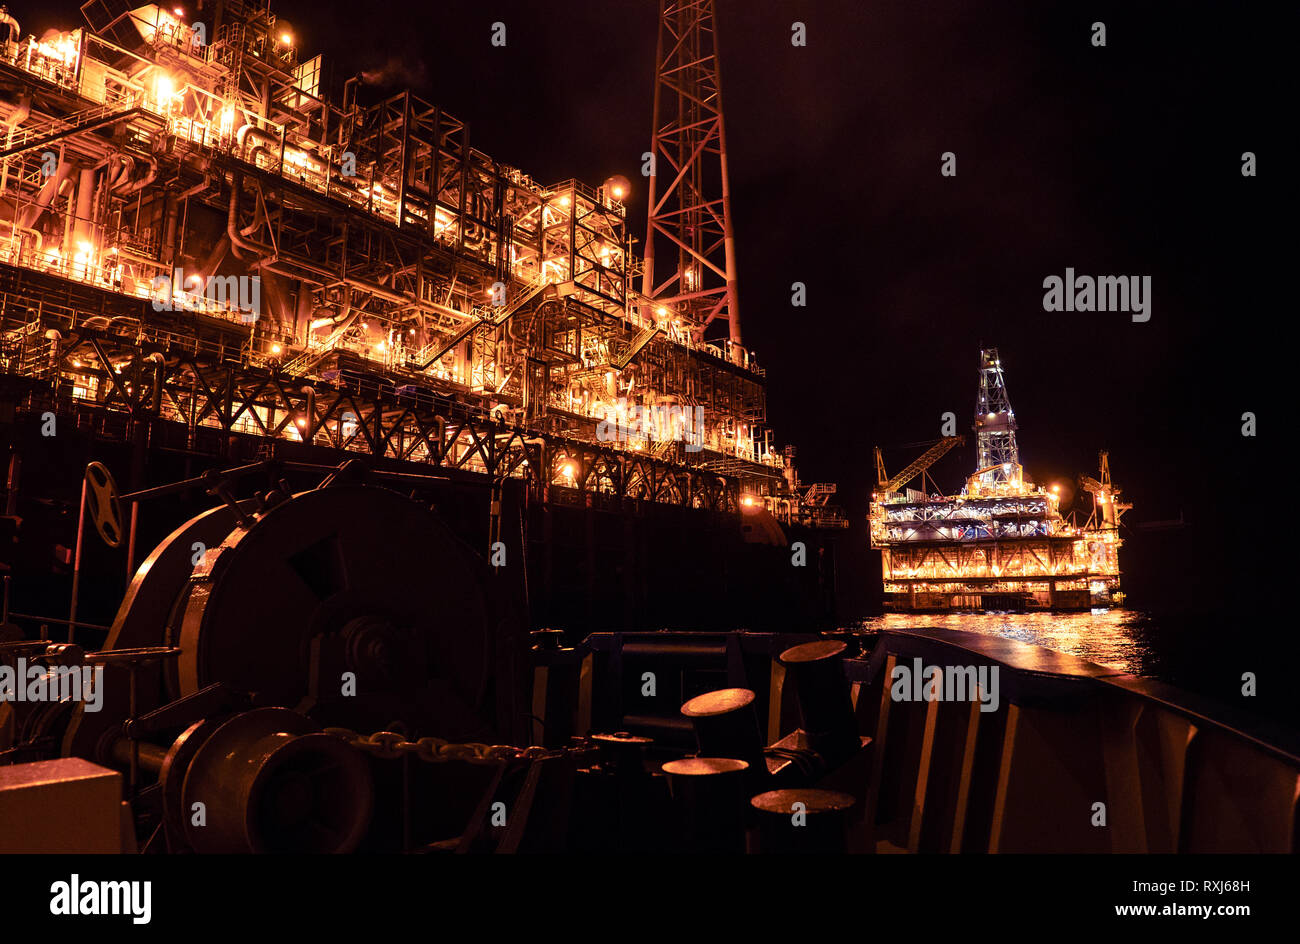 FPSO tanker vessel near Oil platform Rig at night. Offshore oil and gas industry Stock Photo